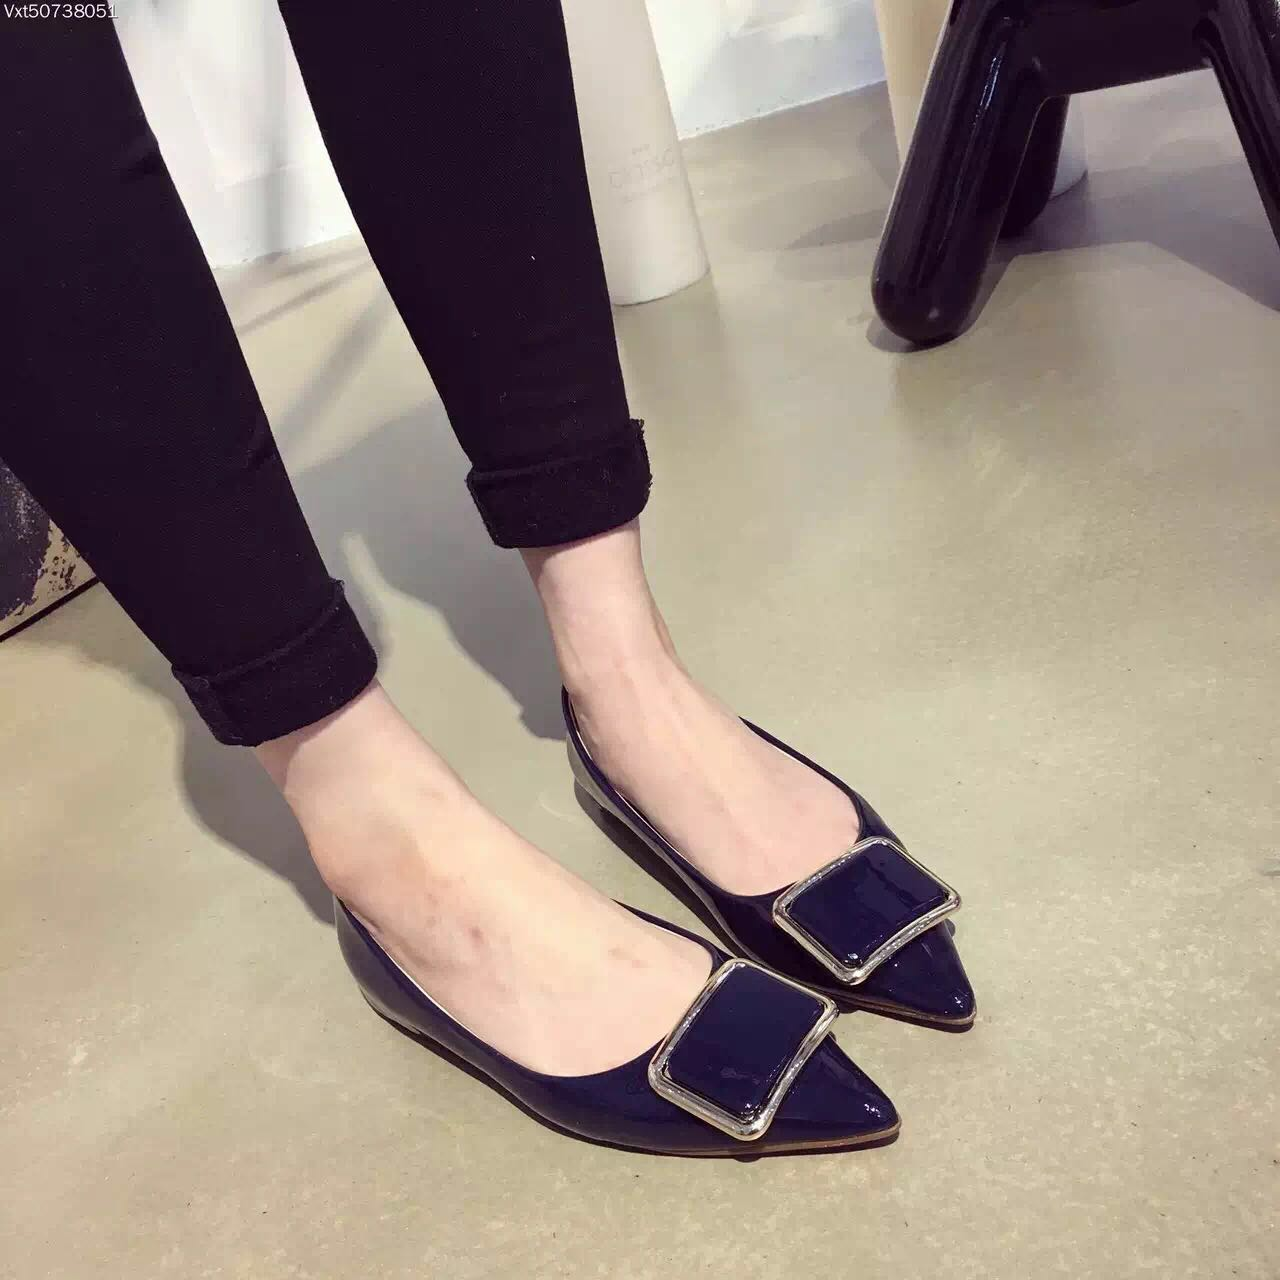 ФОТО Sexy Pointed Toe Flats Women Shoes Balerinas Buckle Single Shoes New Designer Woman Flats Wedding Pink Blue Zapatos Mujer